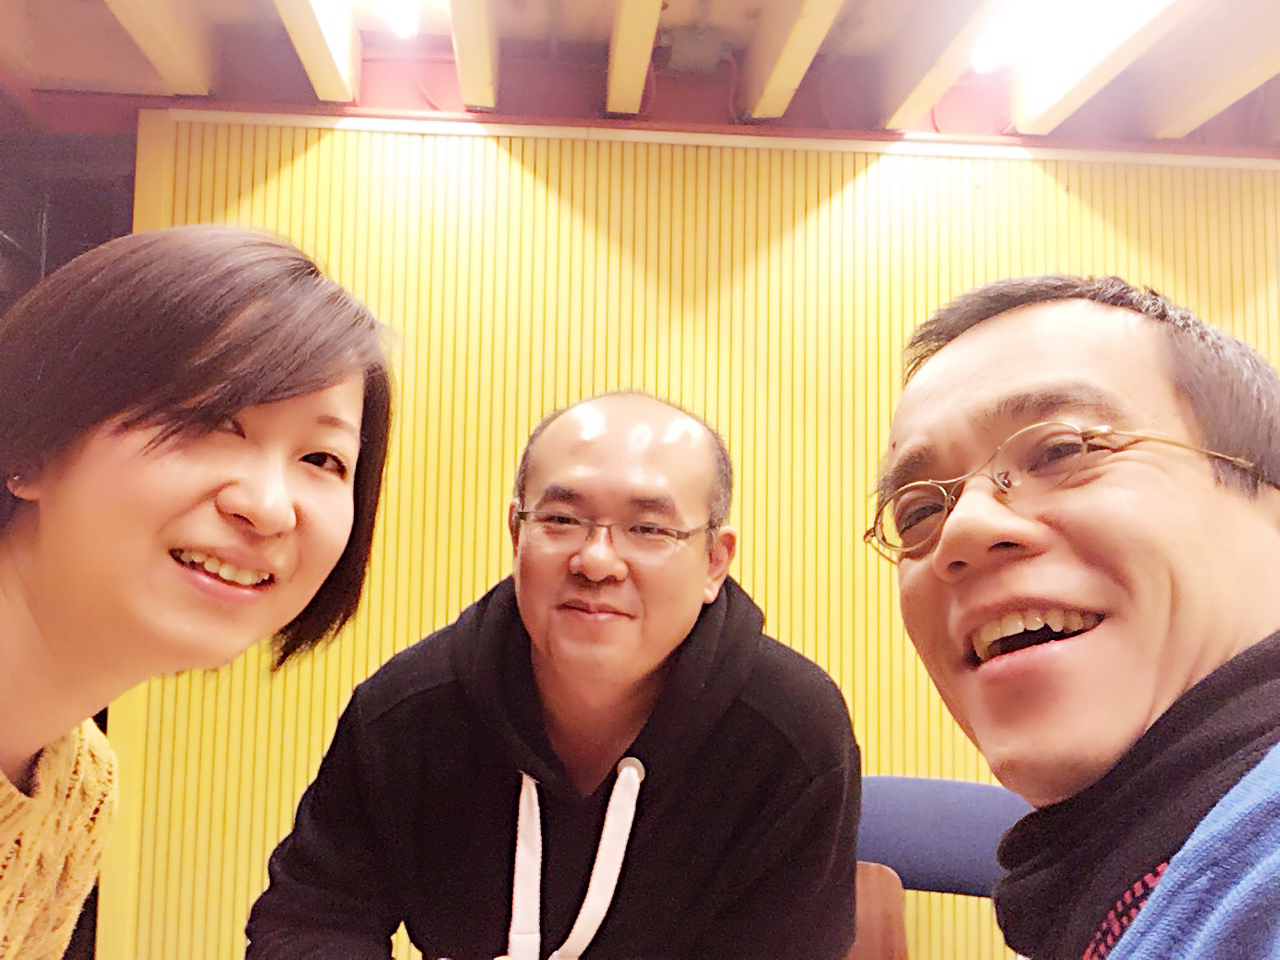 From left to right: Miki Dai, David Li and Hong Tong Wu